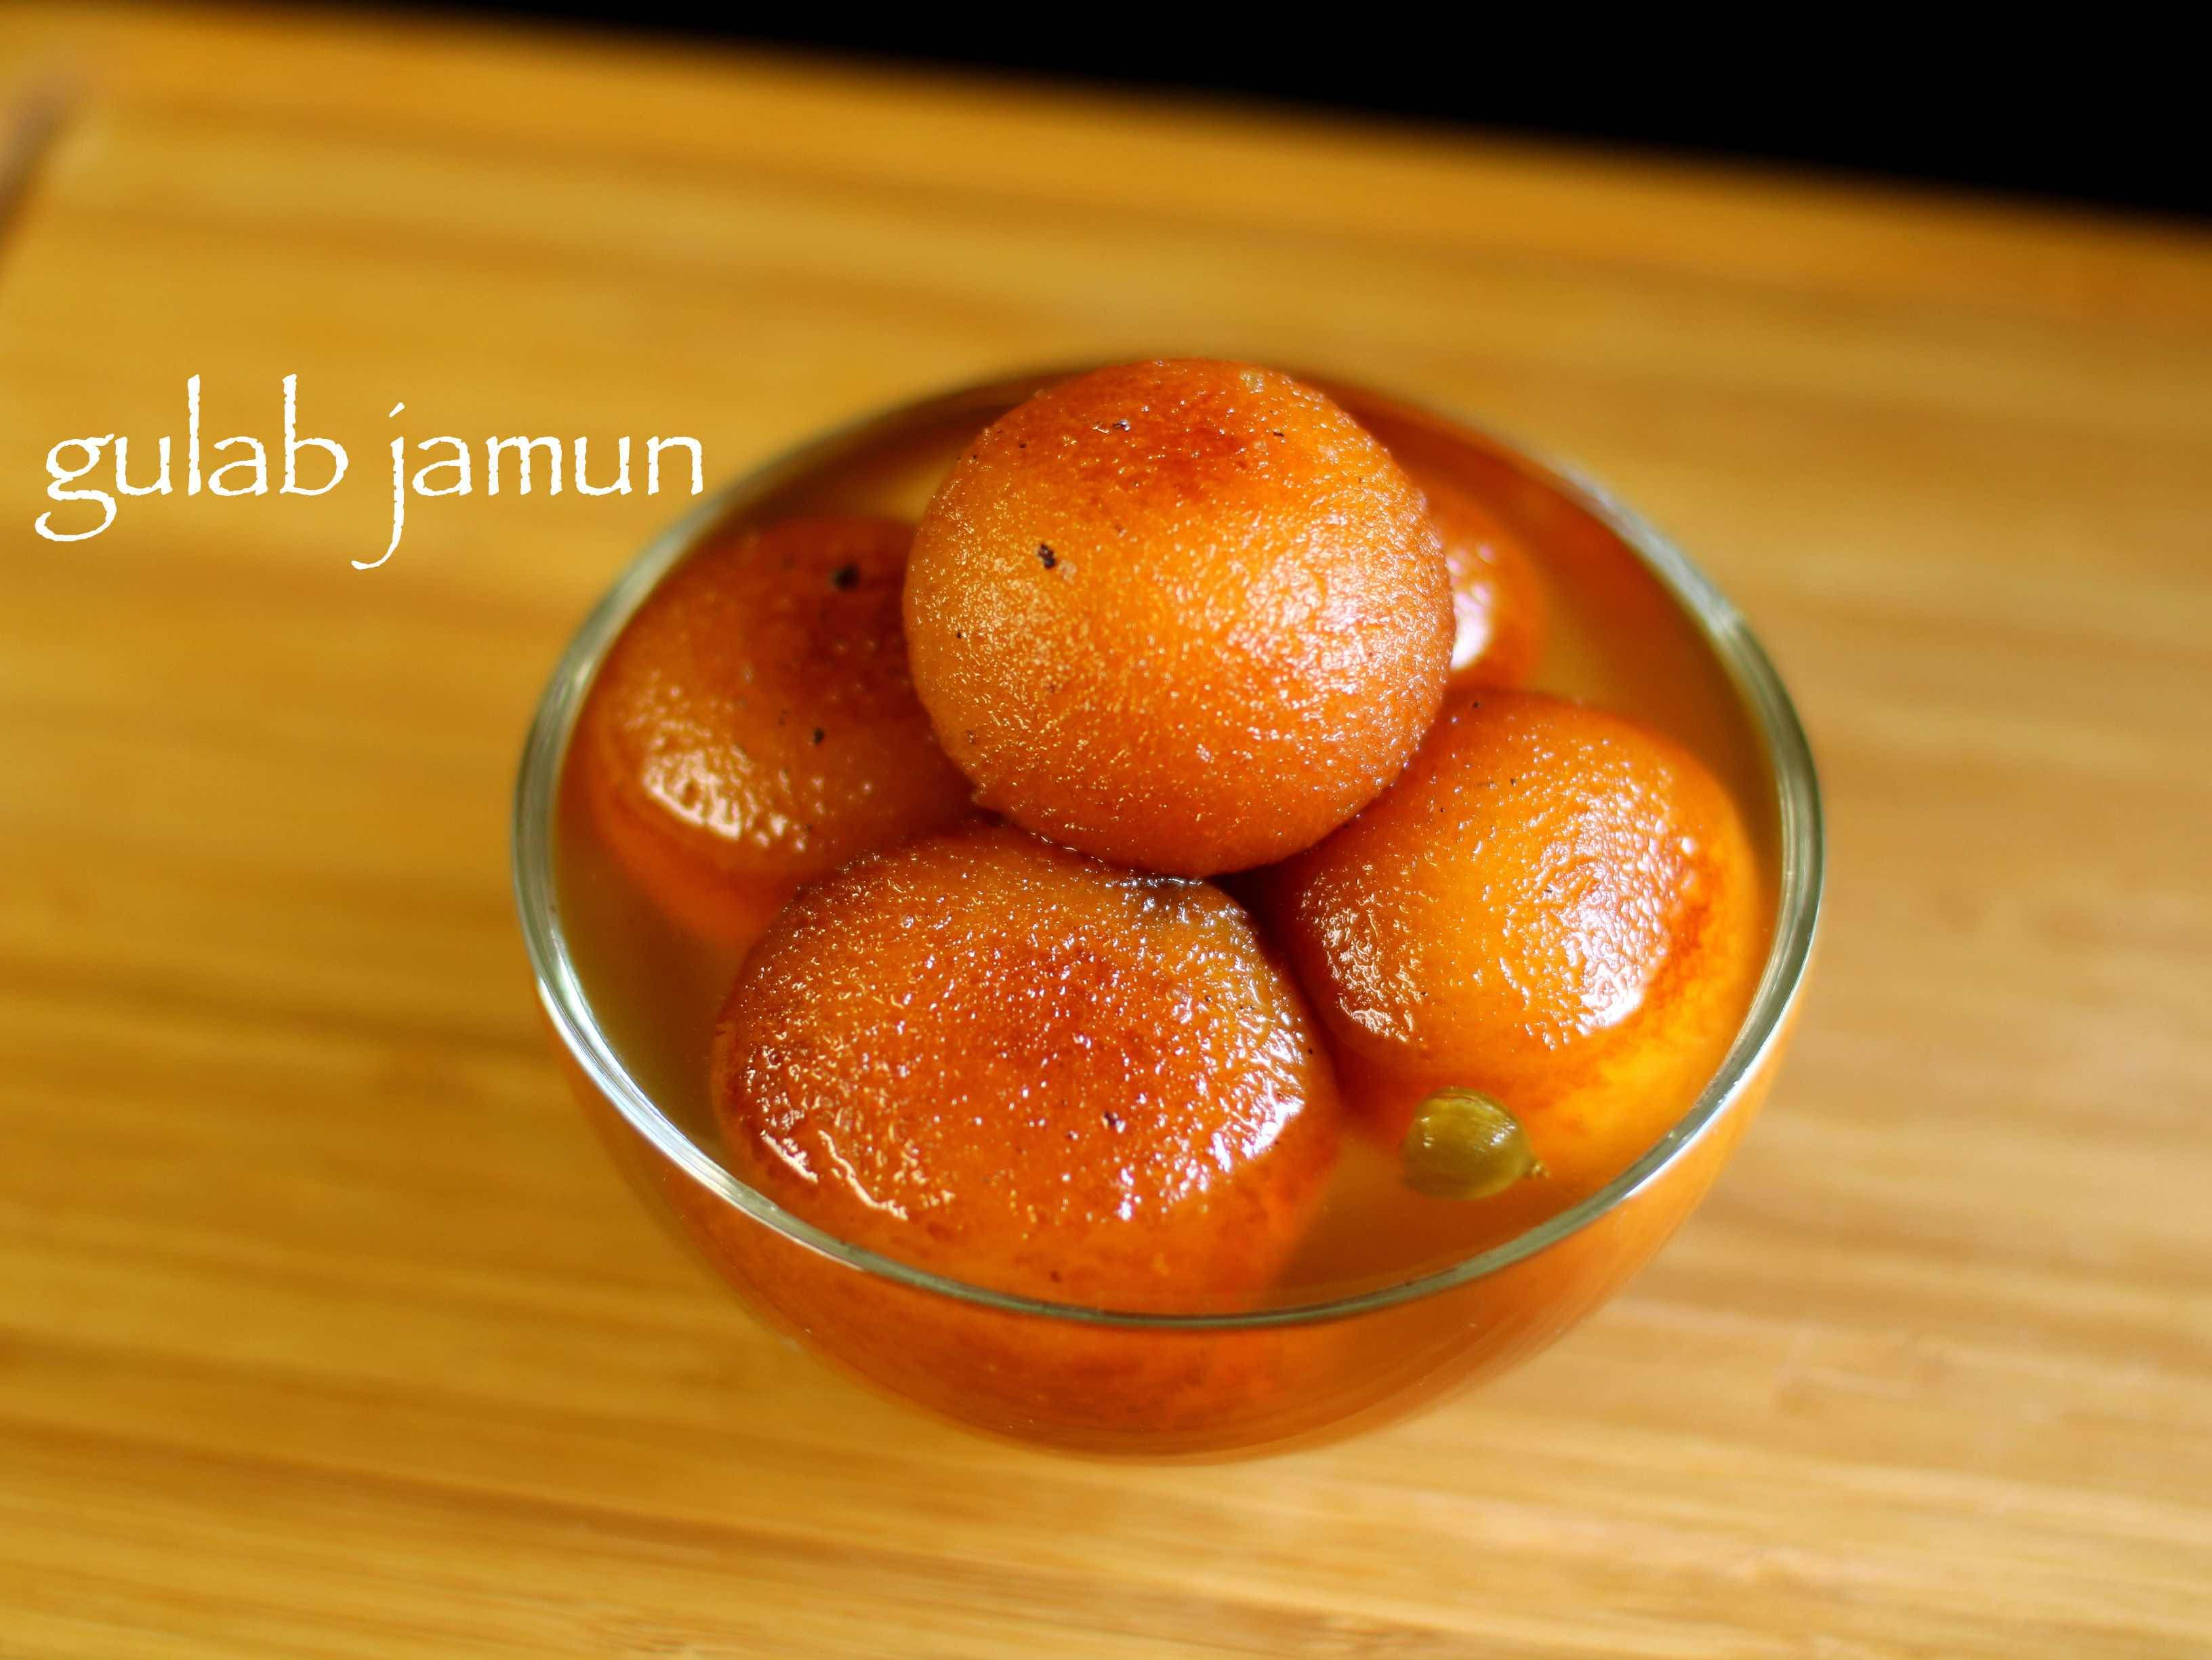 Gulab Jamun Recipe How To Make Gulab Jamun With Milk Powder Recipe Jamun Recipe Gulab Jamun Recipe Gulab Jamun